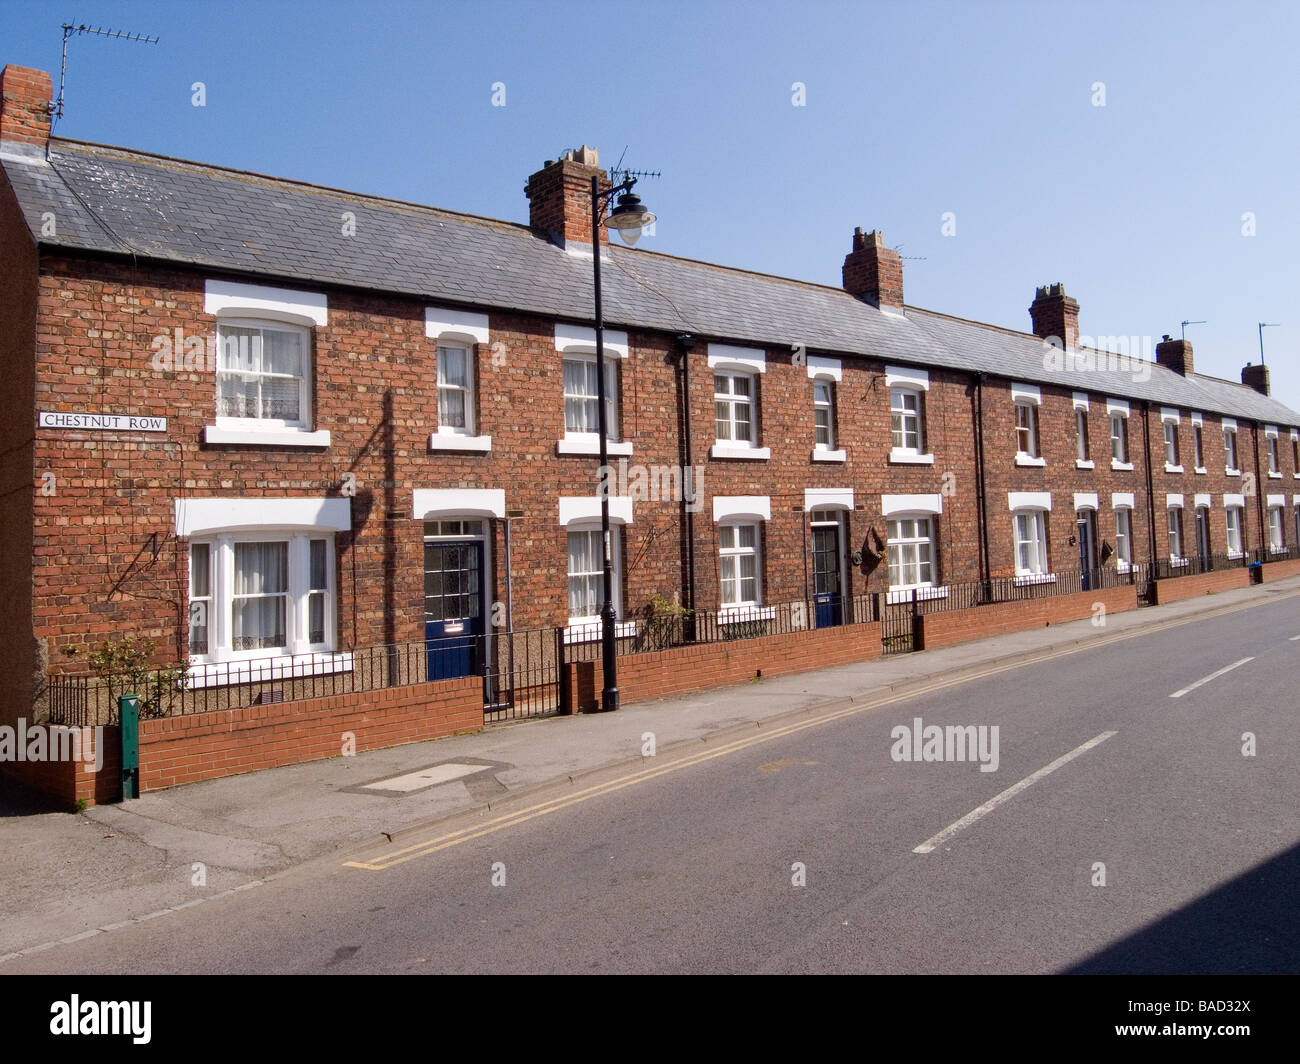 Chestnut Row, a row of substantial well built double fronted terraced houses in Greatham, Co. Durham - Stock Image